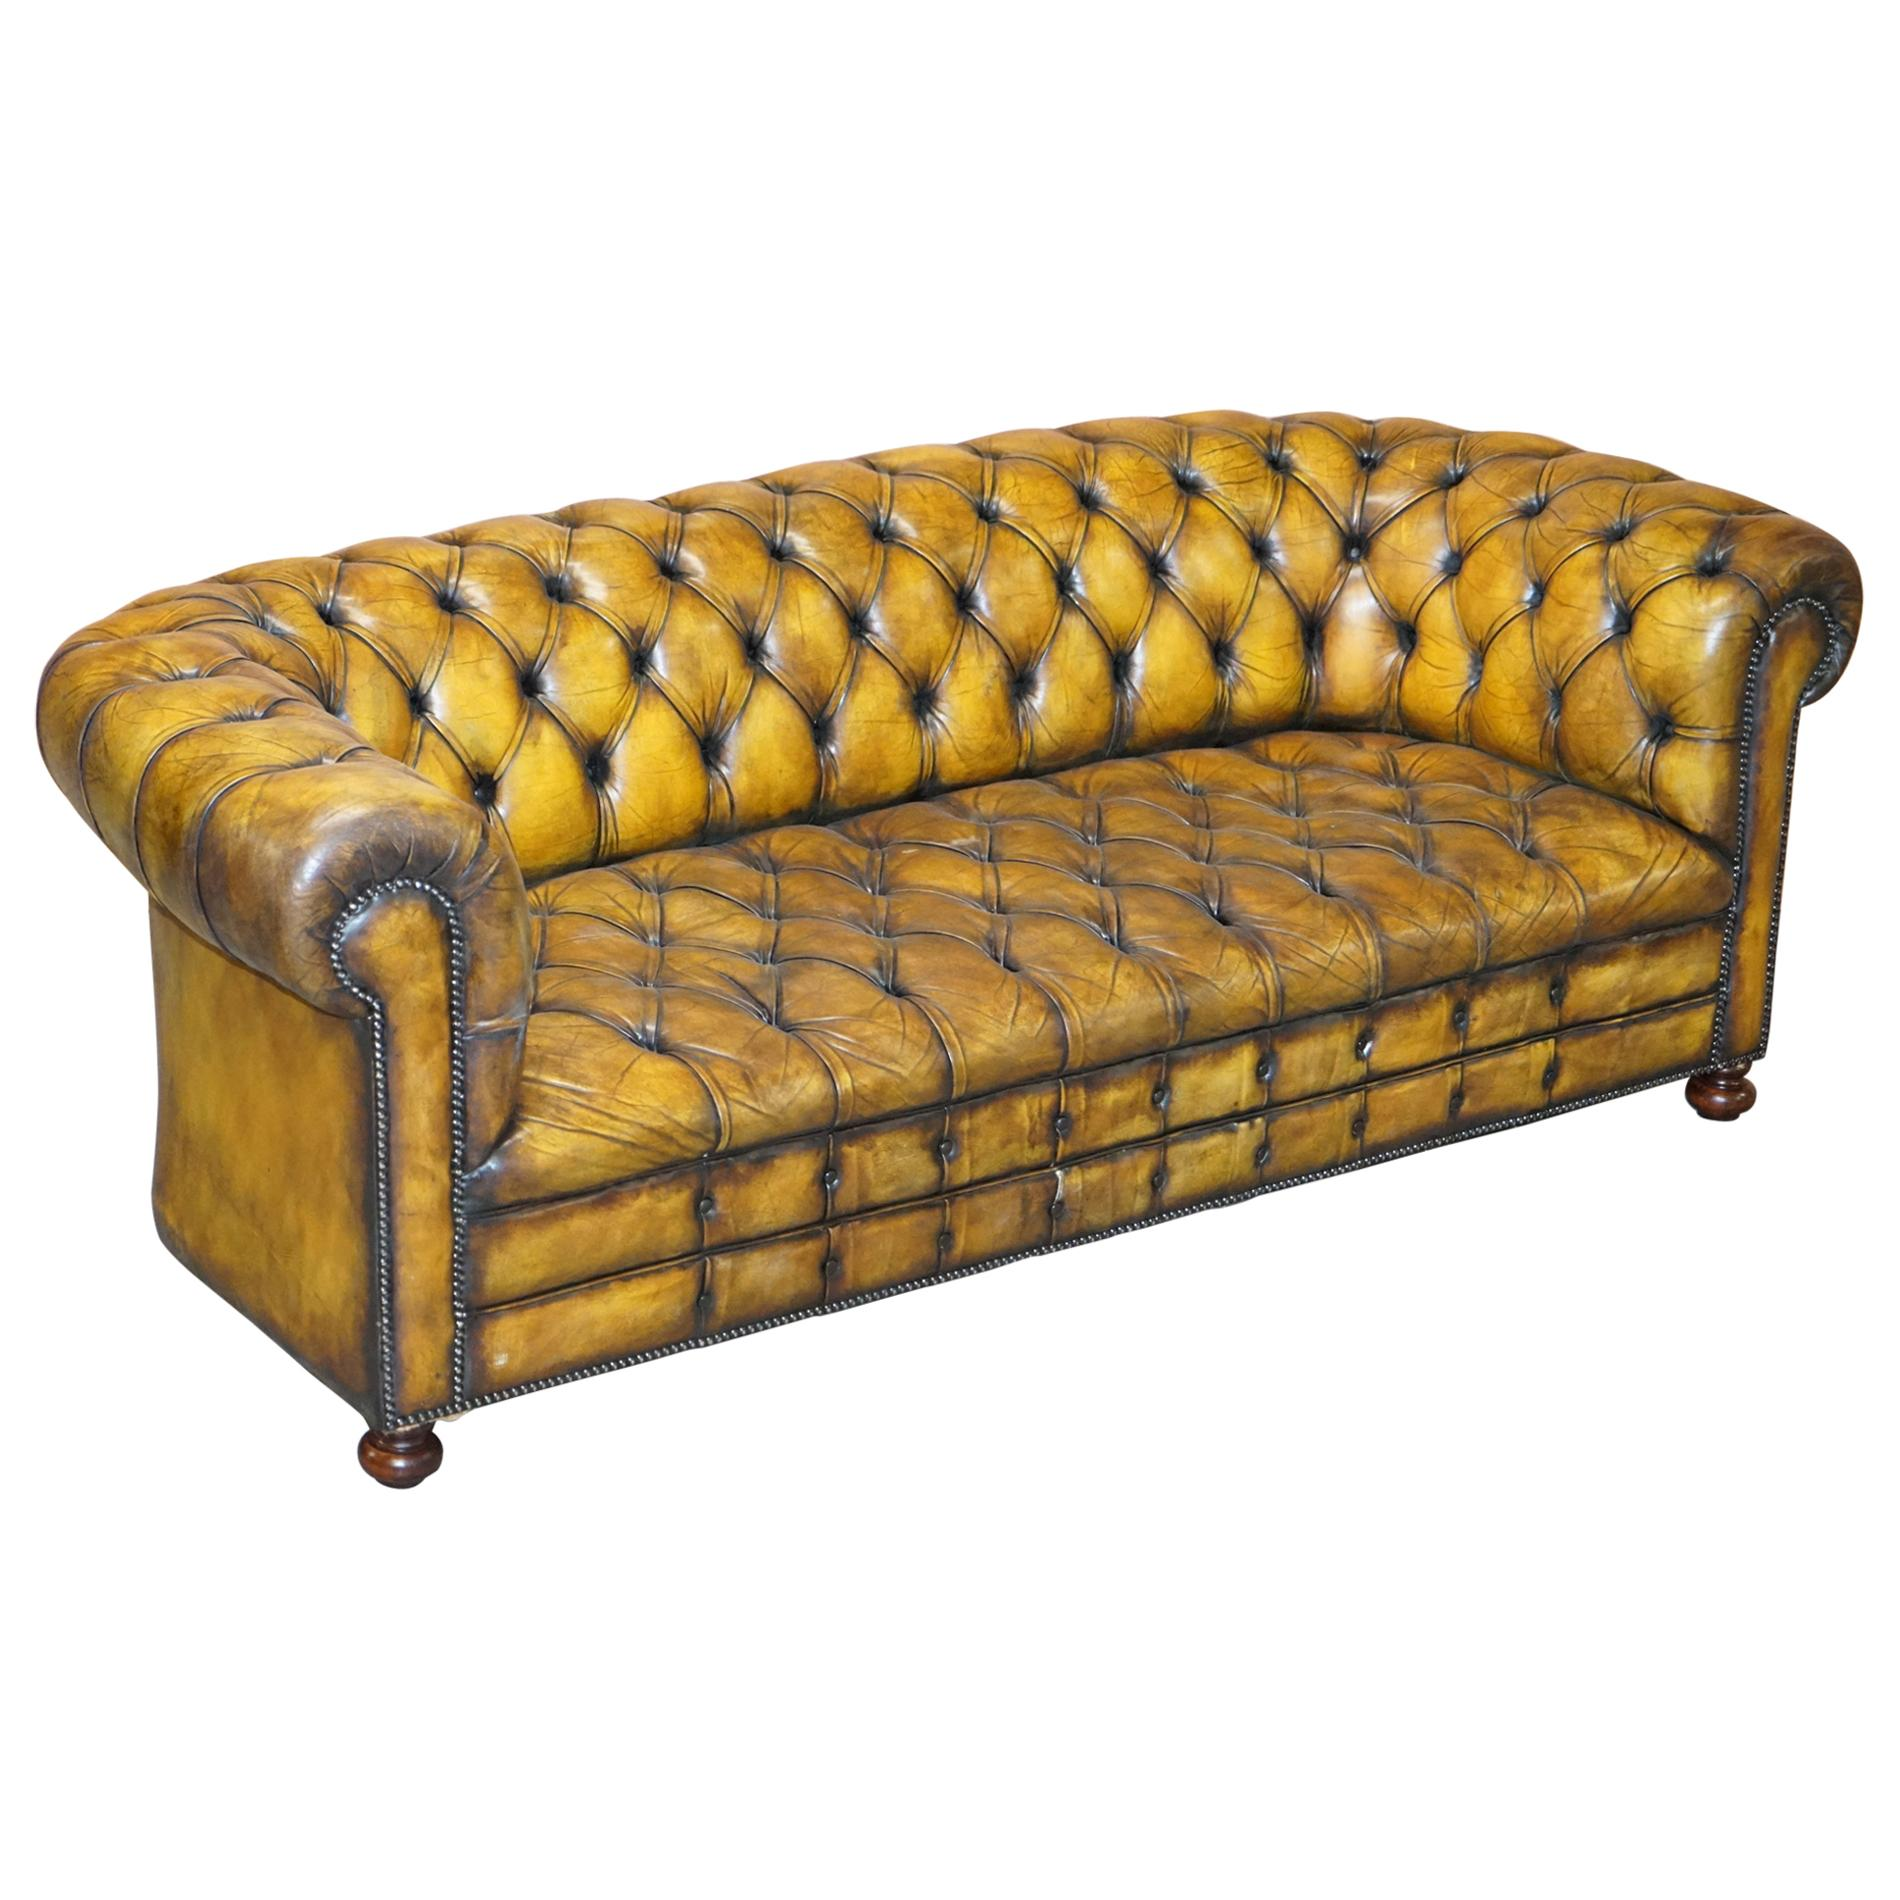 1920's Art Deco Hand Dyed Restored Whisky Brown Leather Chesterfield Tufted Sofa